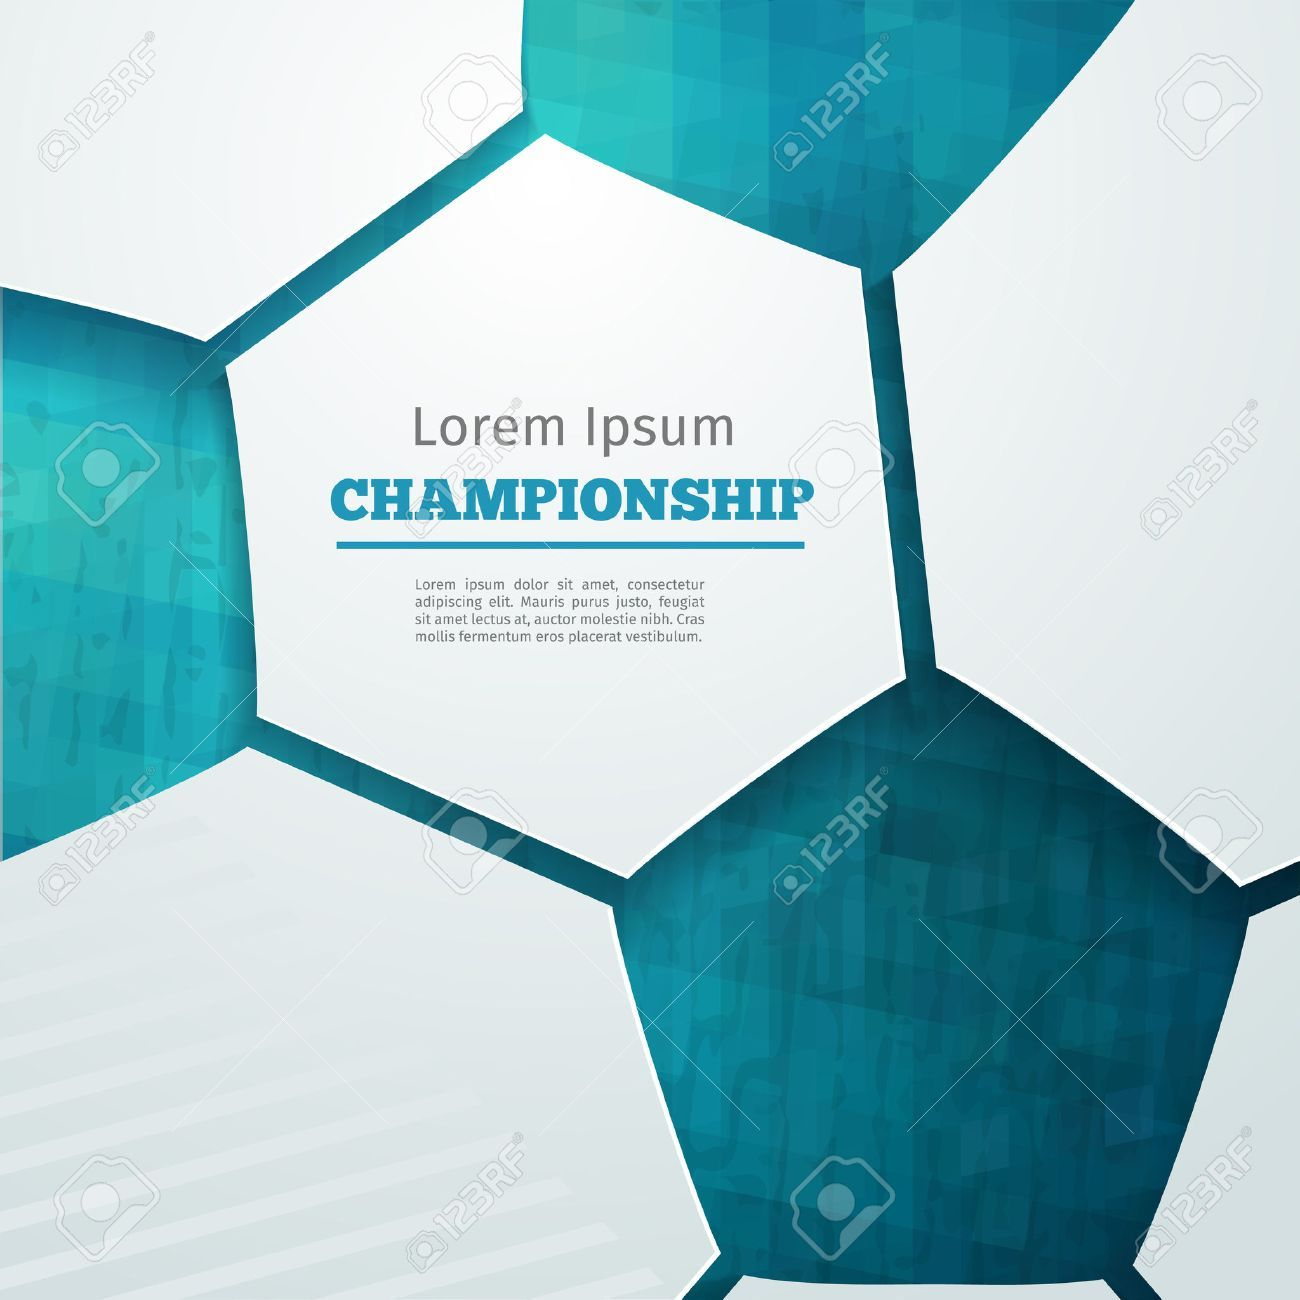 Football Abstract Geometric Background With Polygons Soccer Label